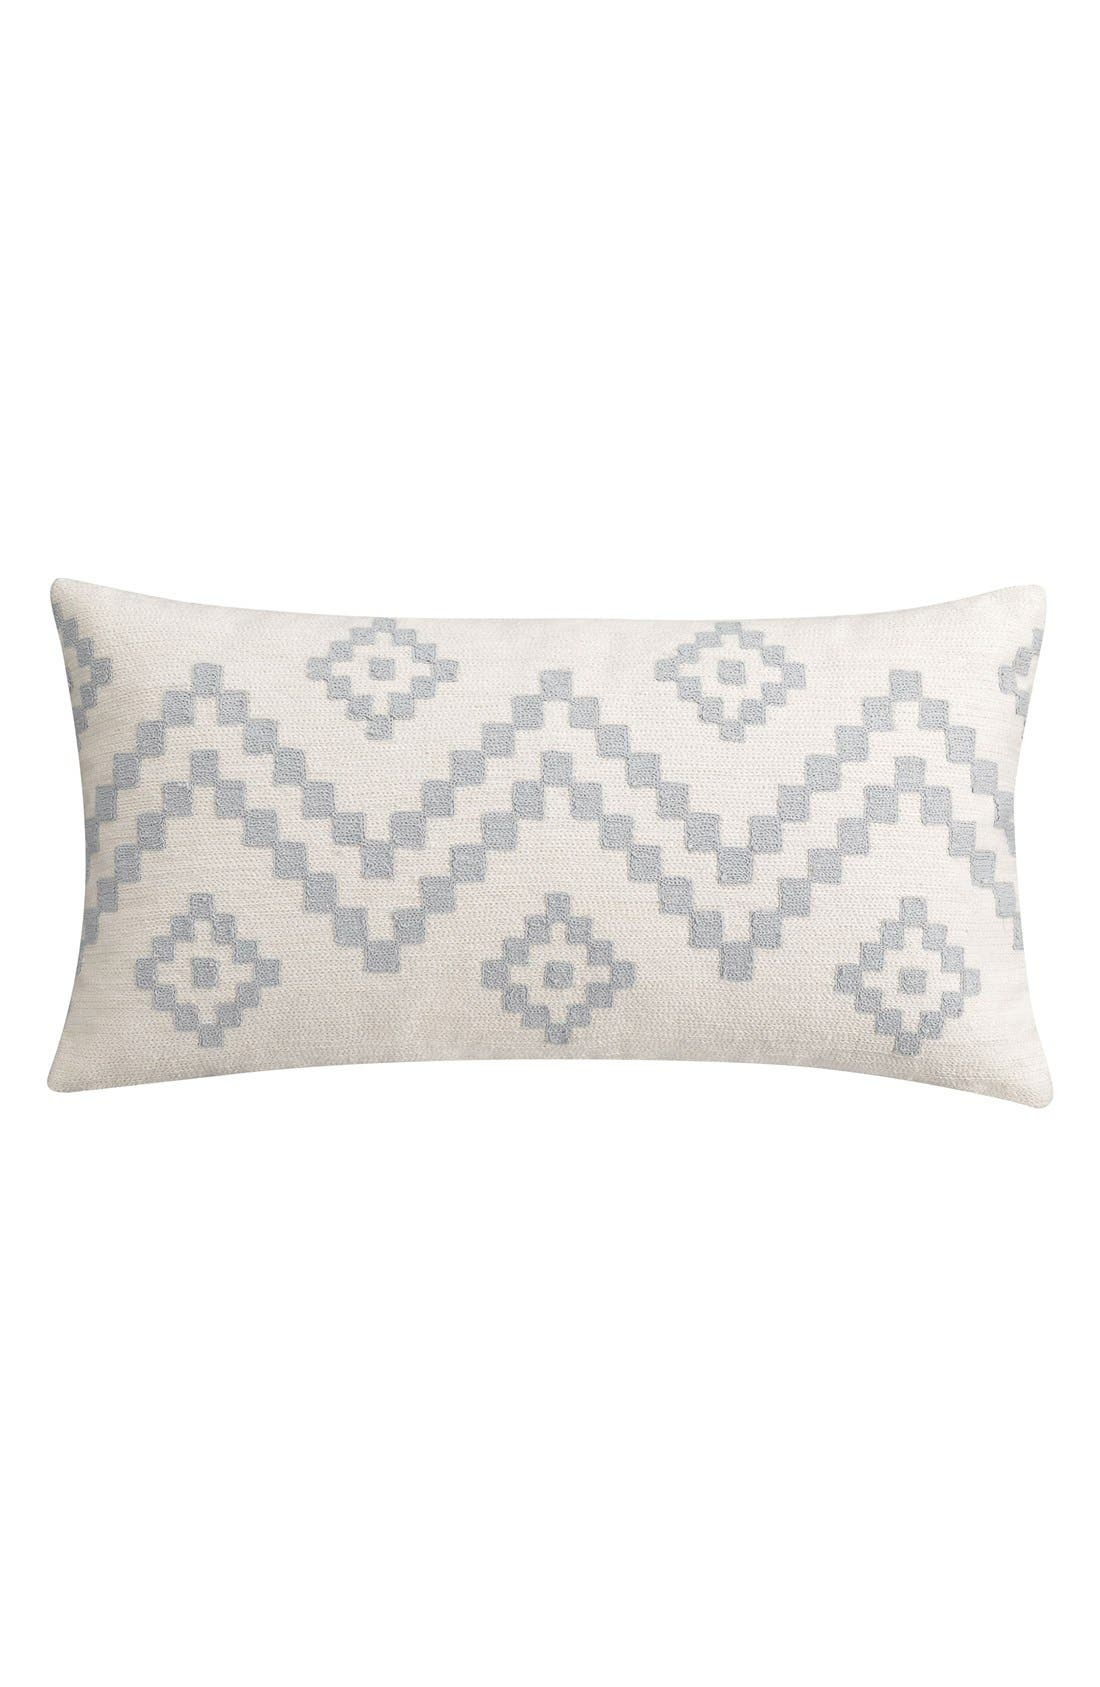 cupcakes and cashmere 'Klim' Crewel Embroidered Accent Pillow